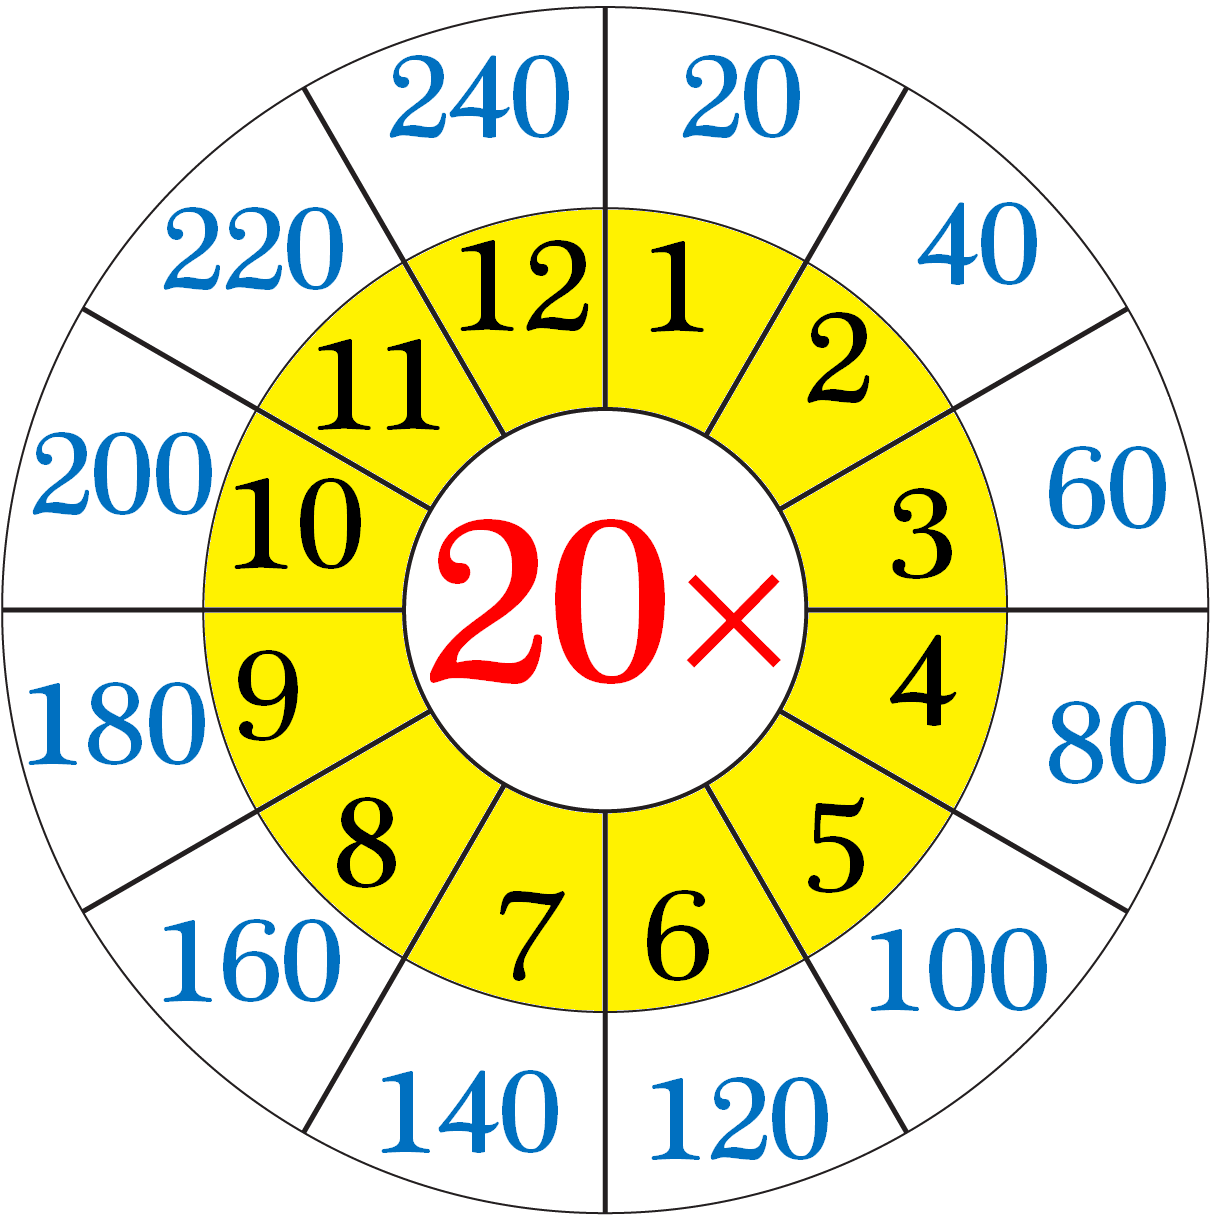 Worksheet On Multiplication Table Of 20   Word Problems On